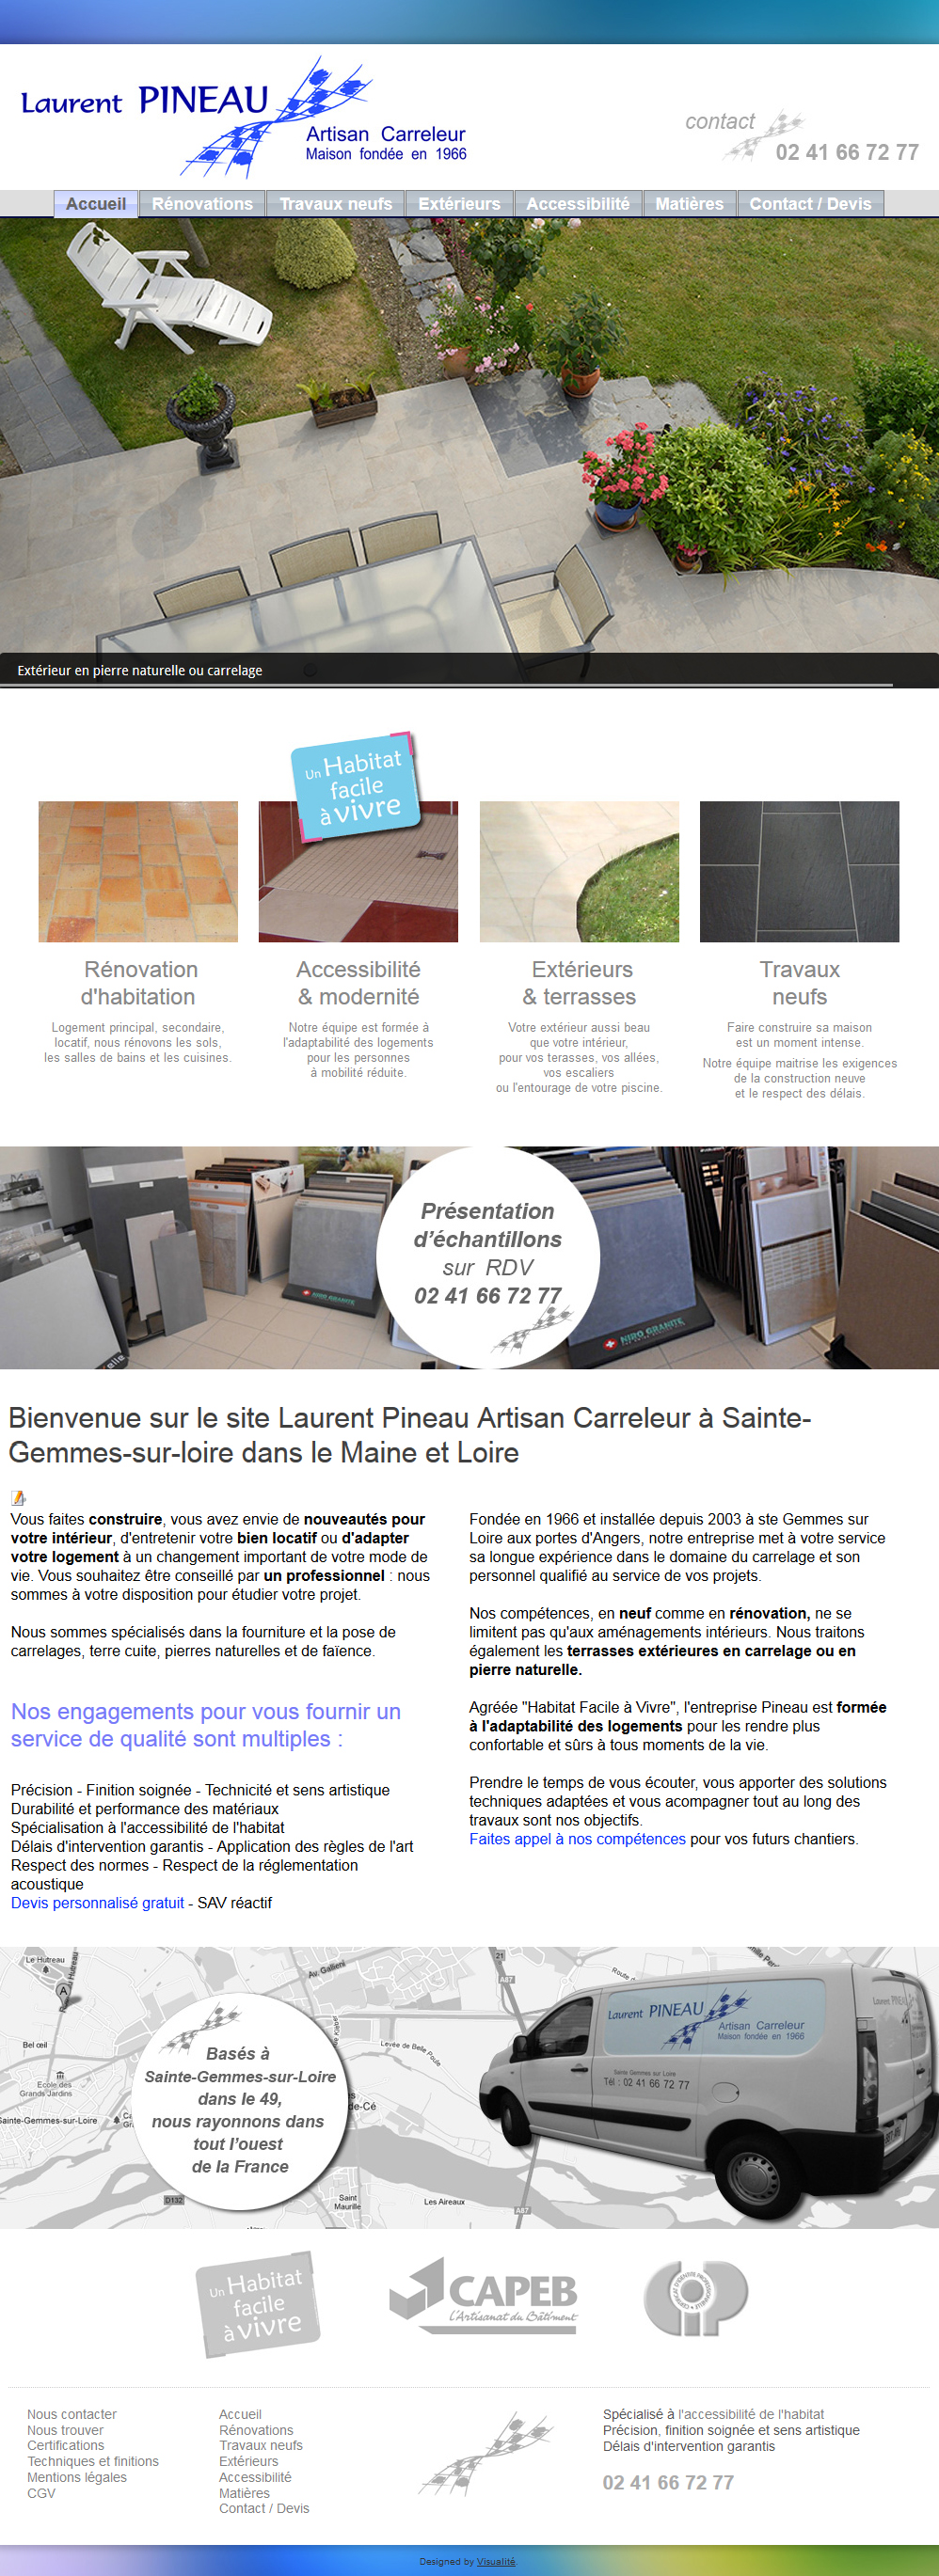 laurent pineau carrelage3